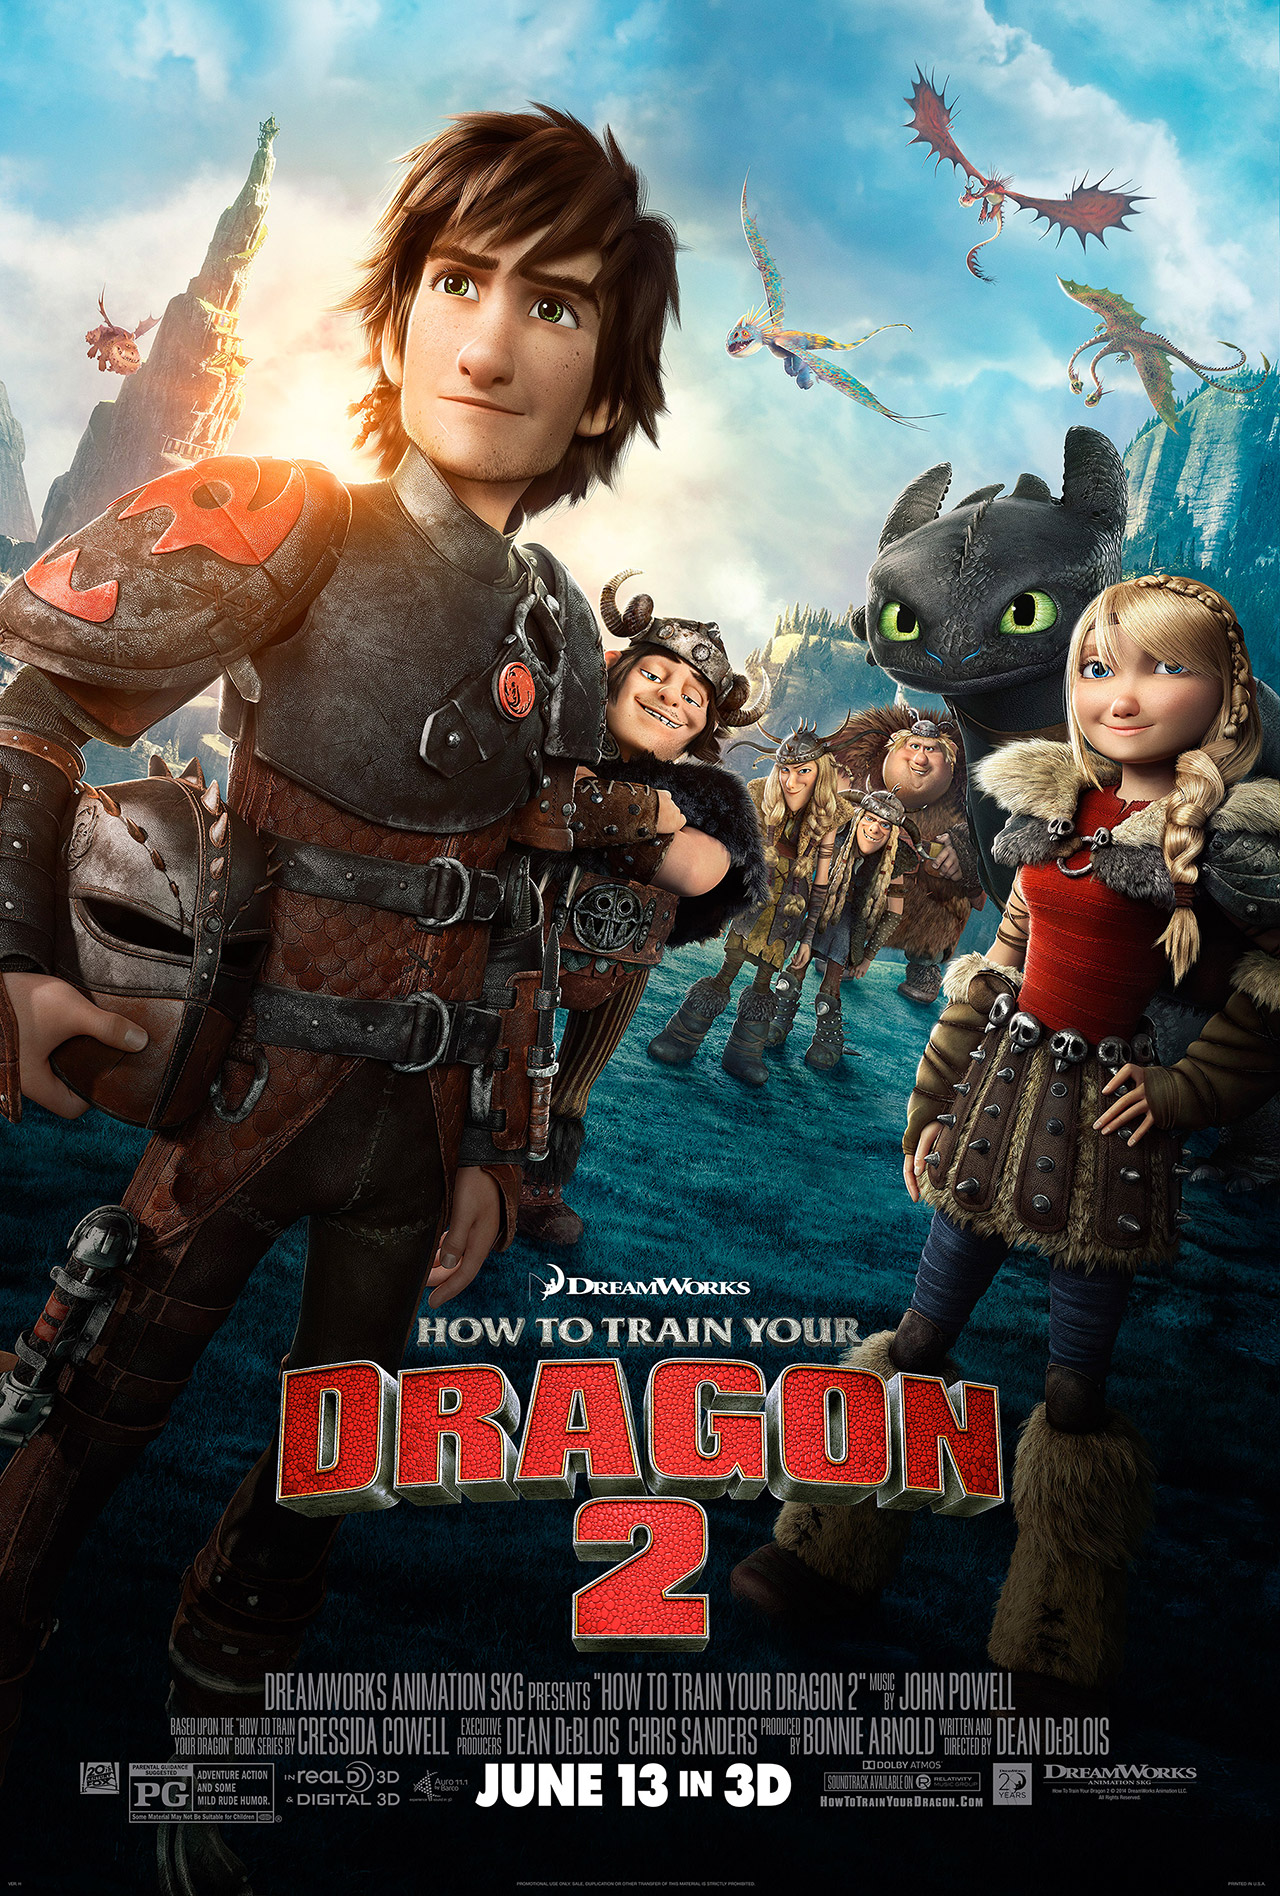 The gang's all back! | How to Train Your Dragon 2 Promotional Poster, courtesy of Dreamworks Animation.